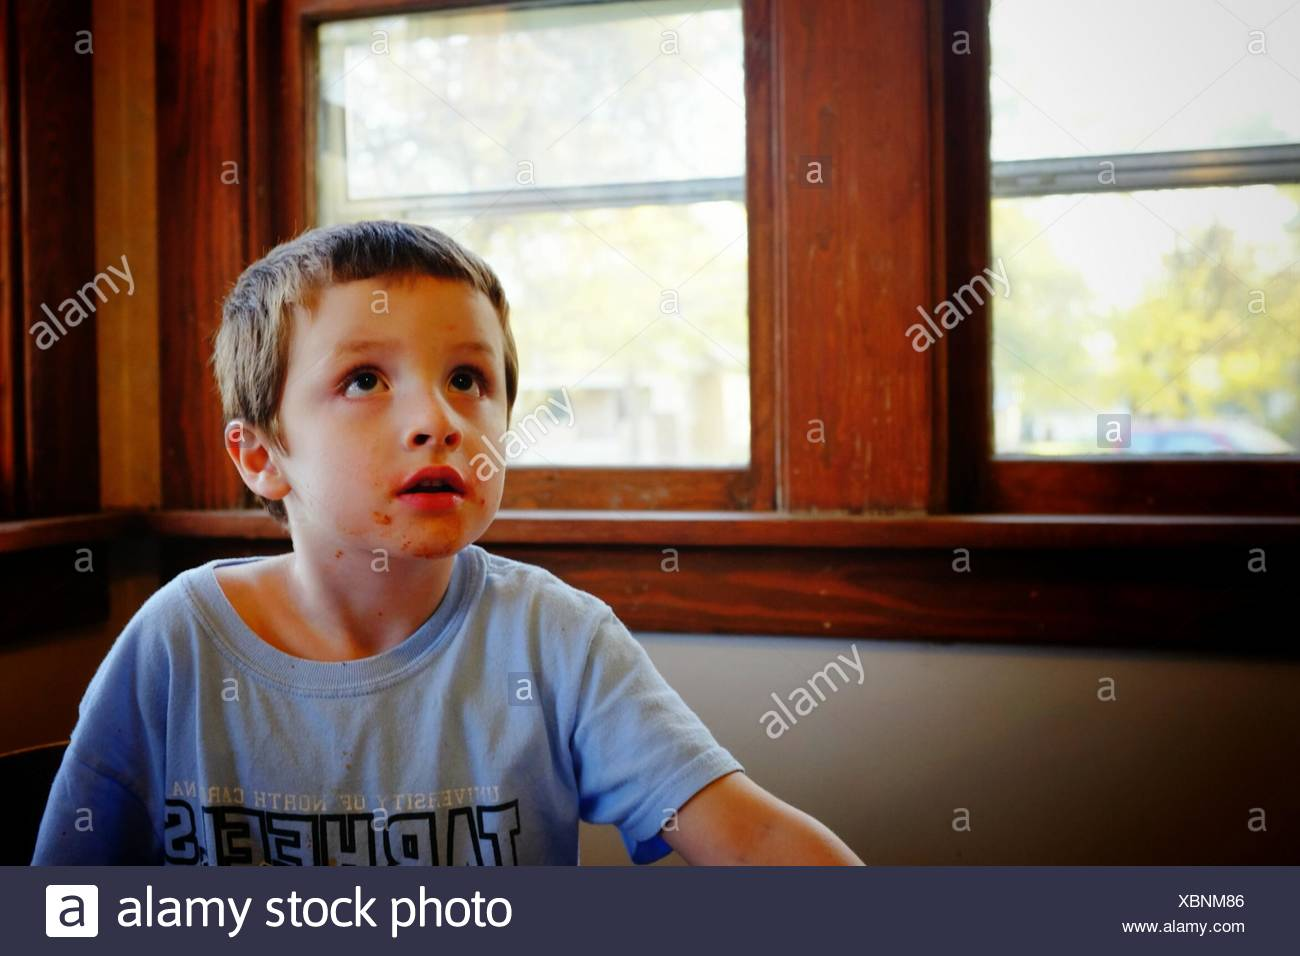 Cute Boy Looking Up After Meal At Home - Stock Image